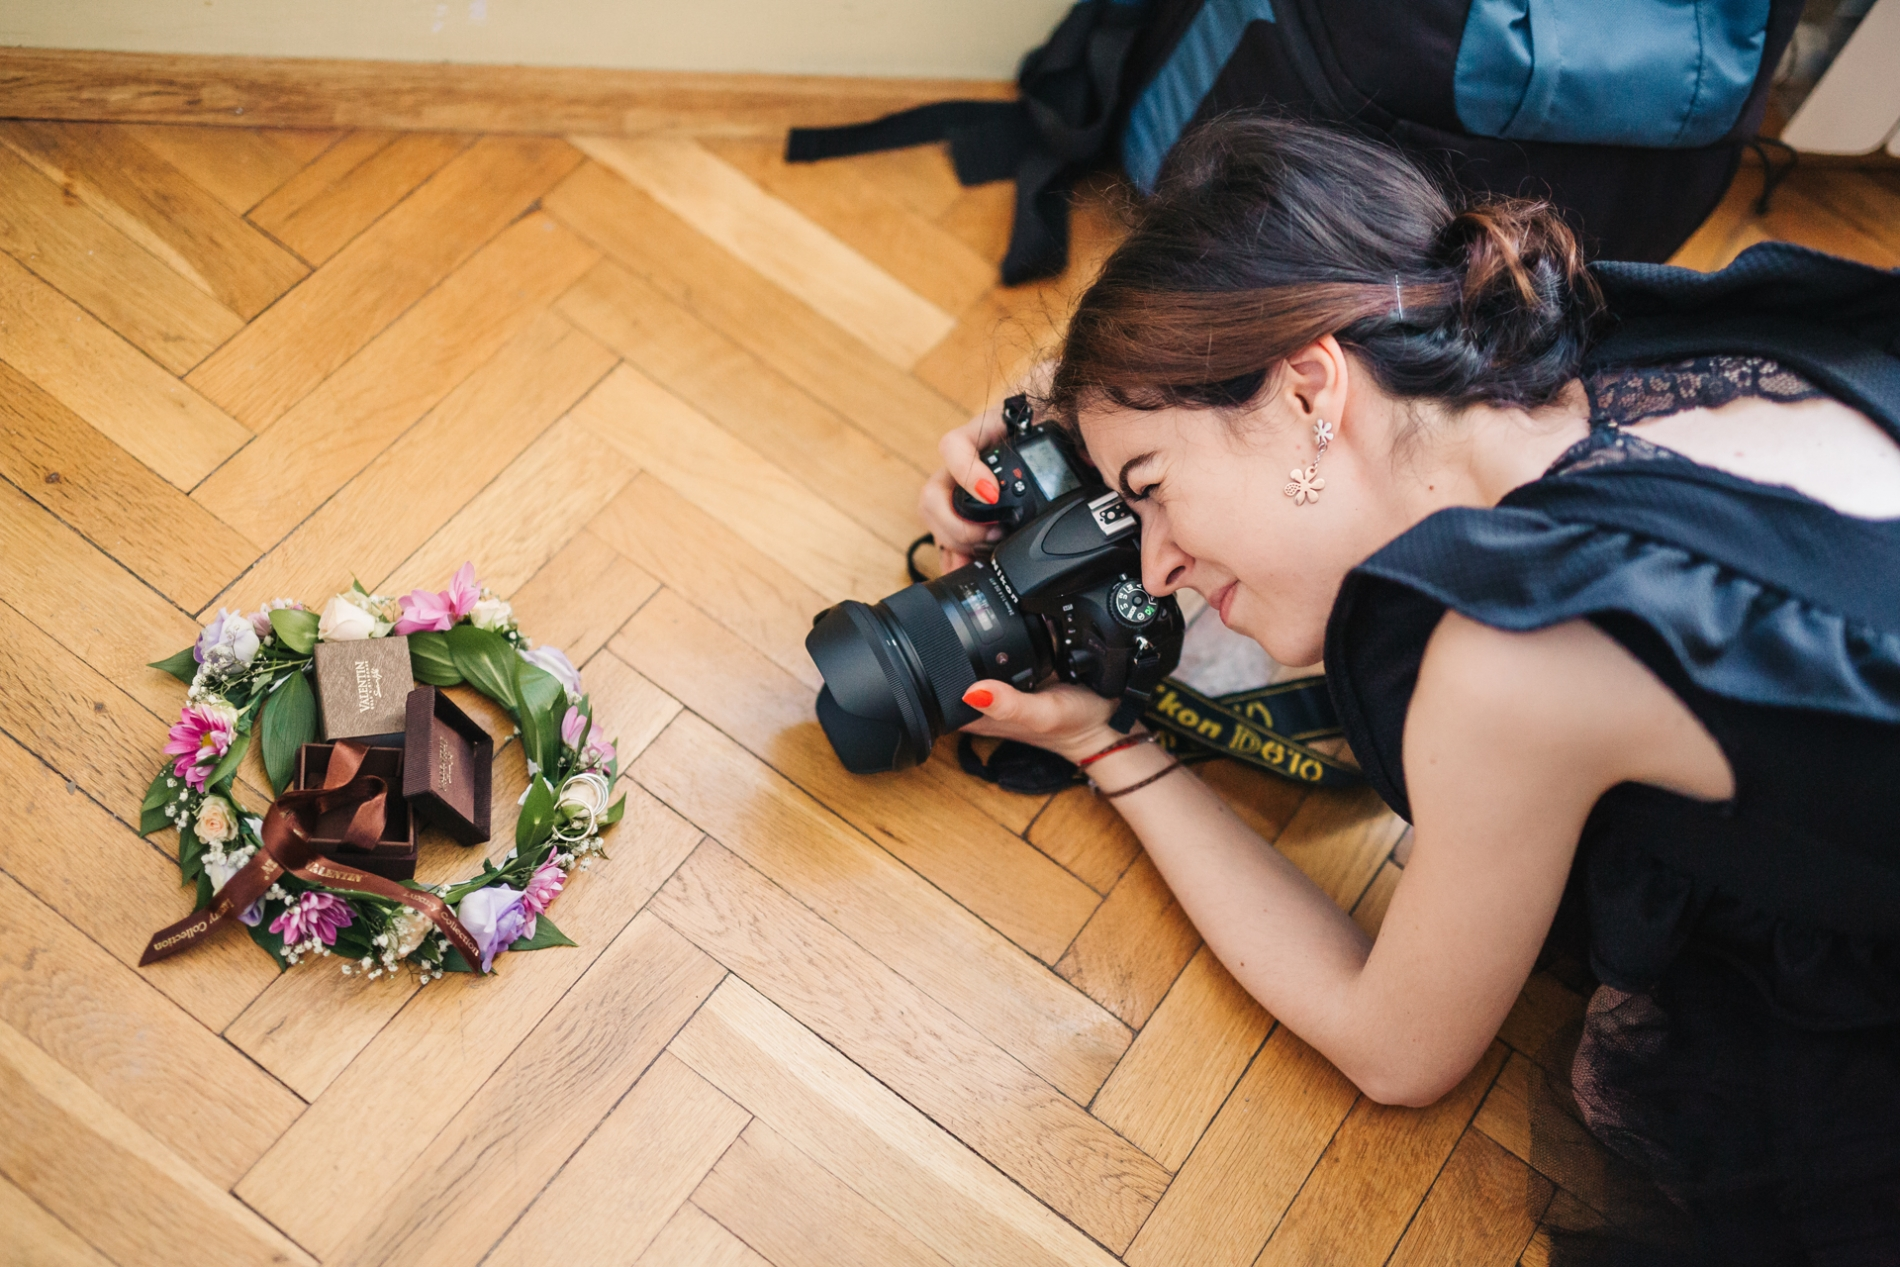 Lovech Wedding Photographer Hristina Handzhieva